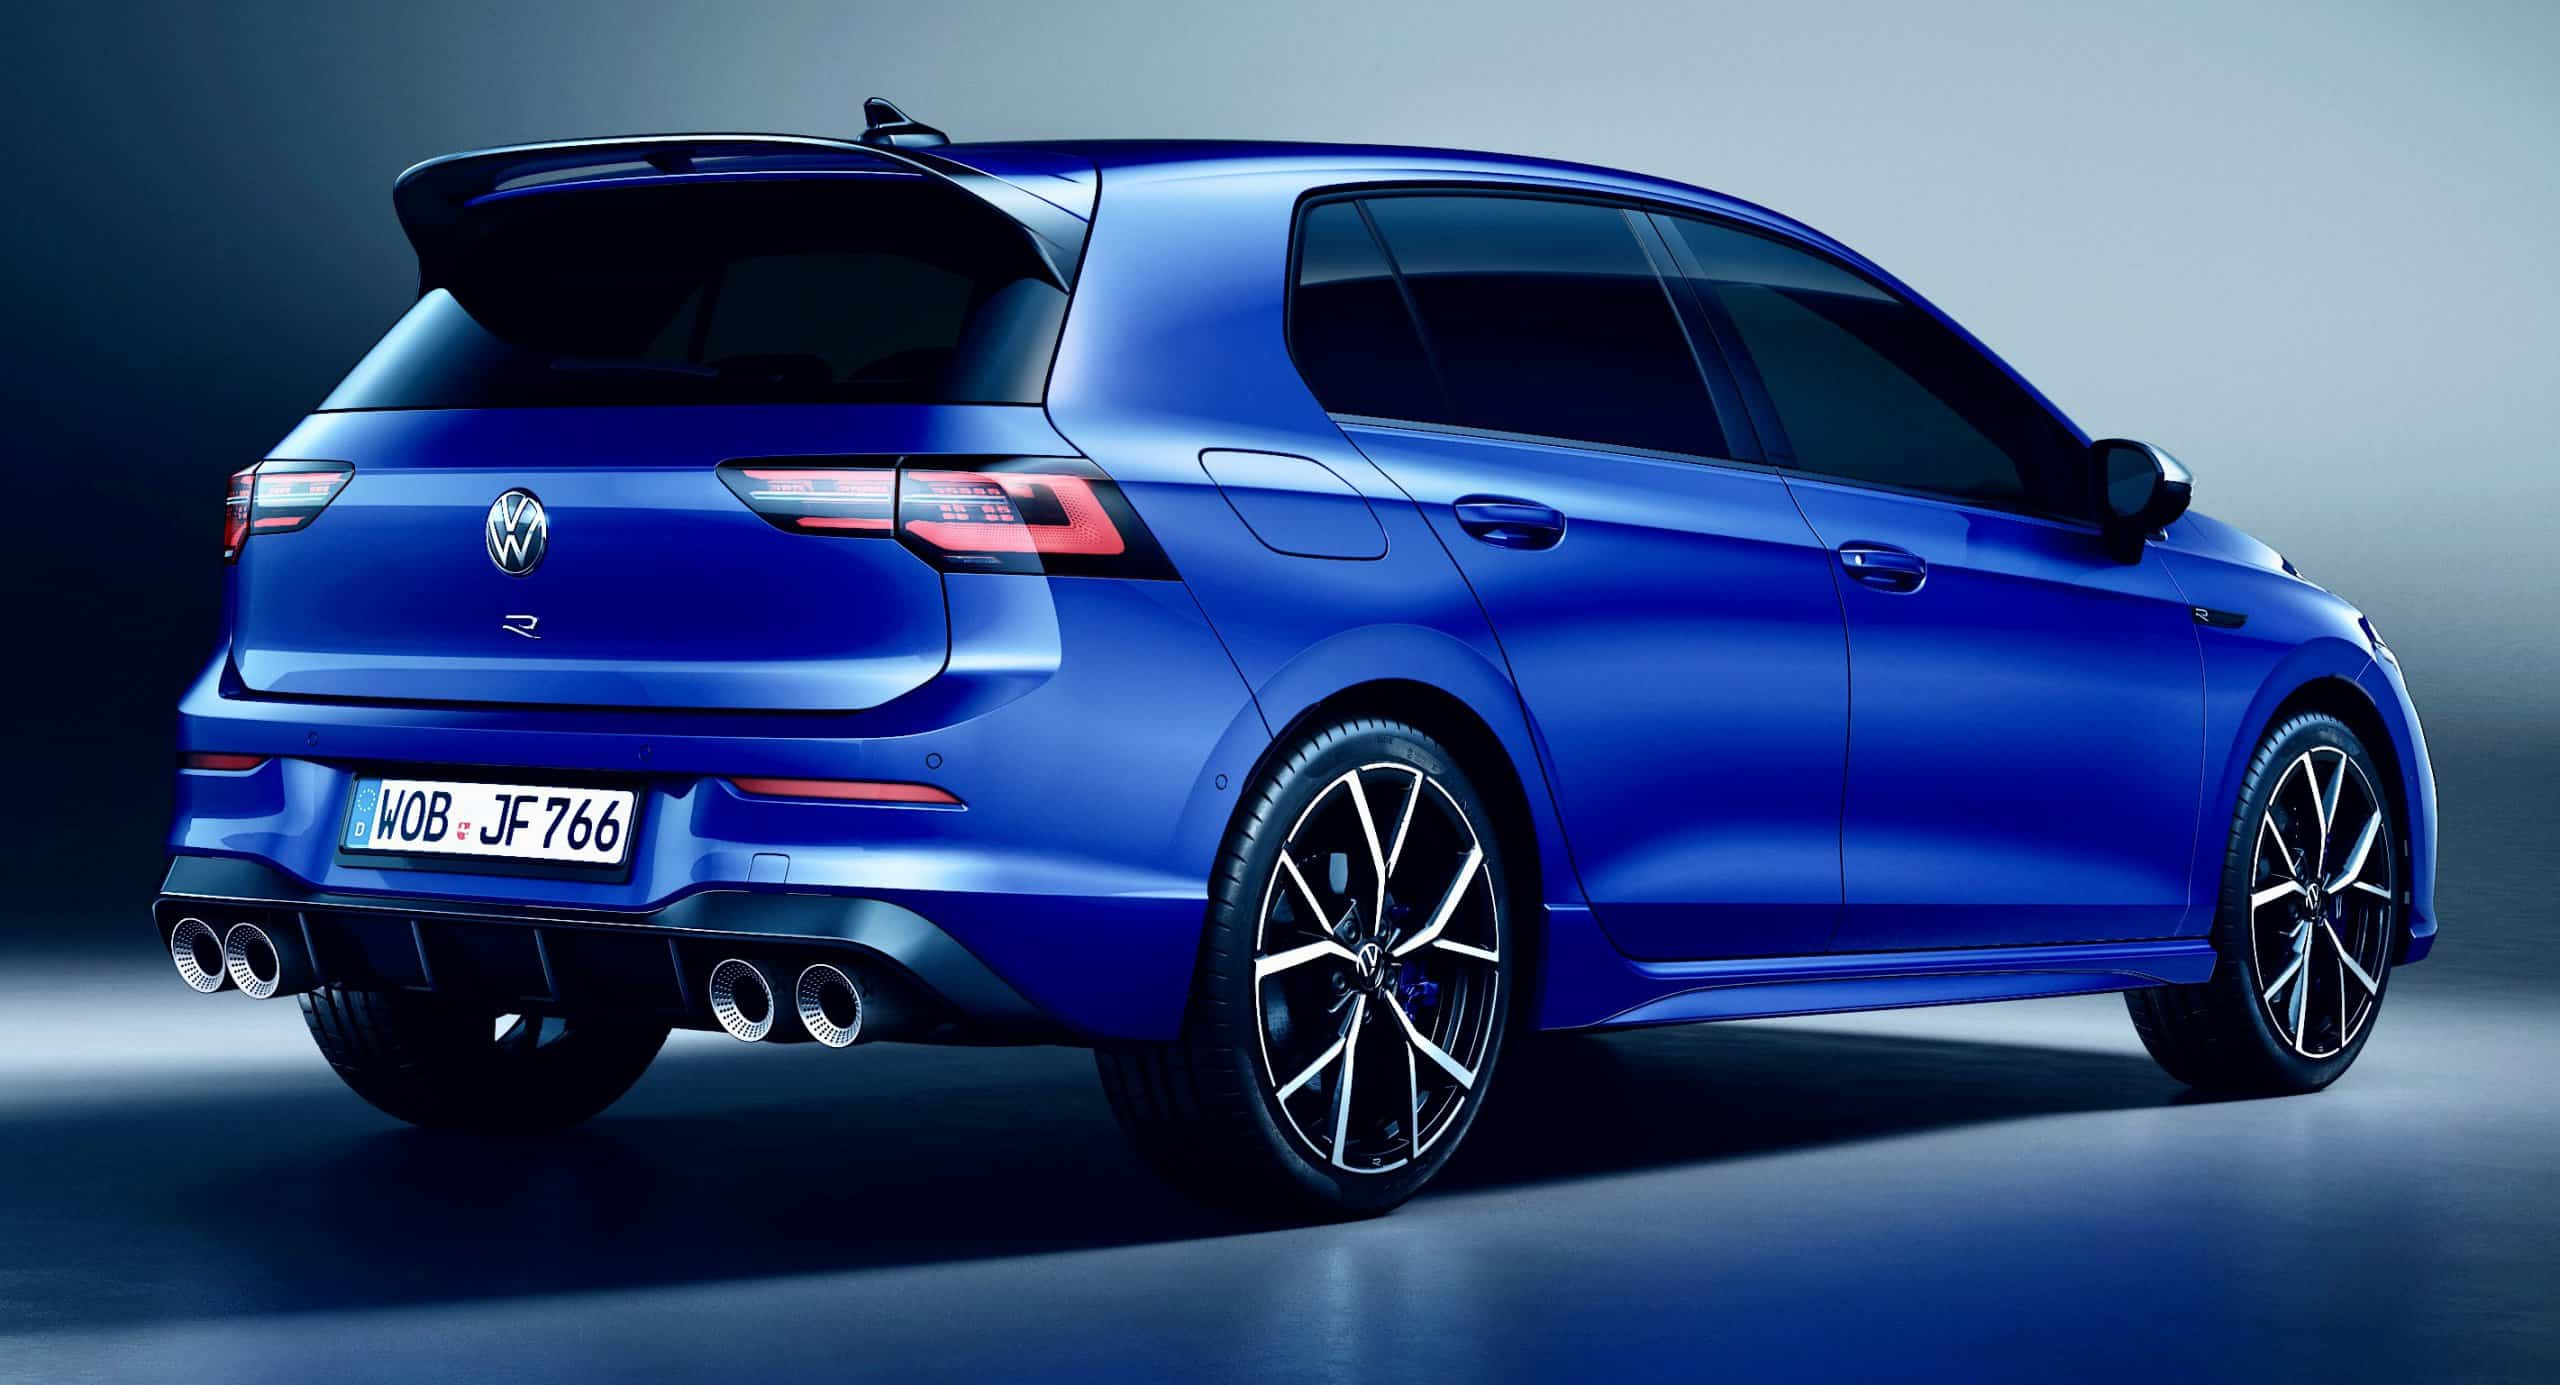 Volkswagen unveils 315-horsepower 2022 Golf R hot hatch